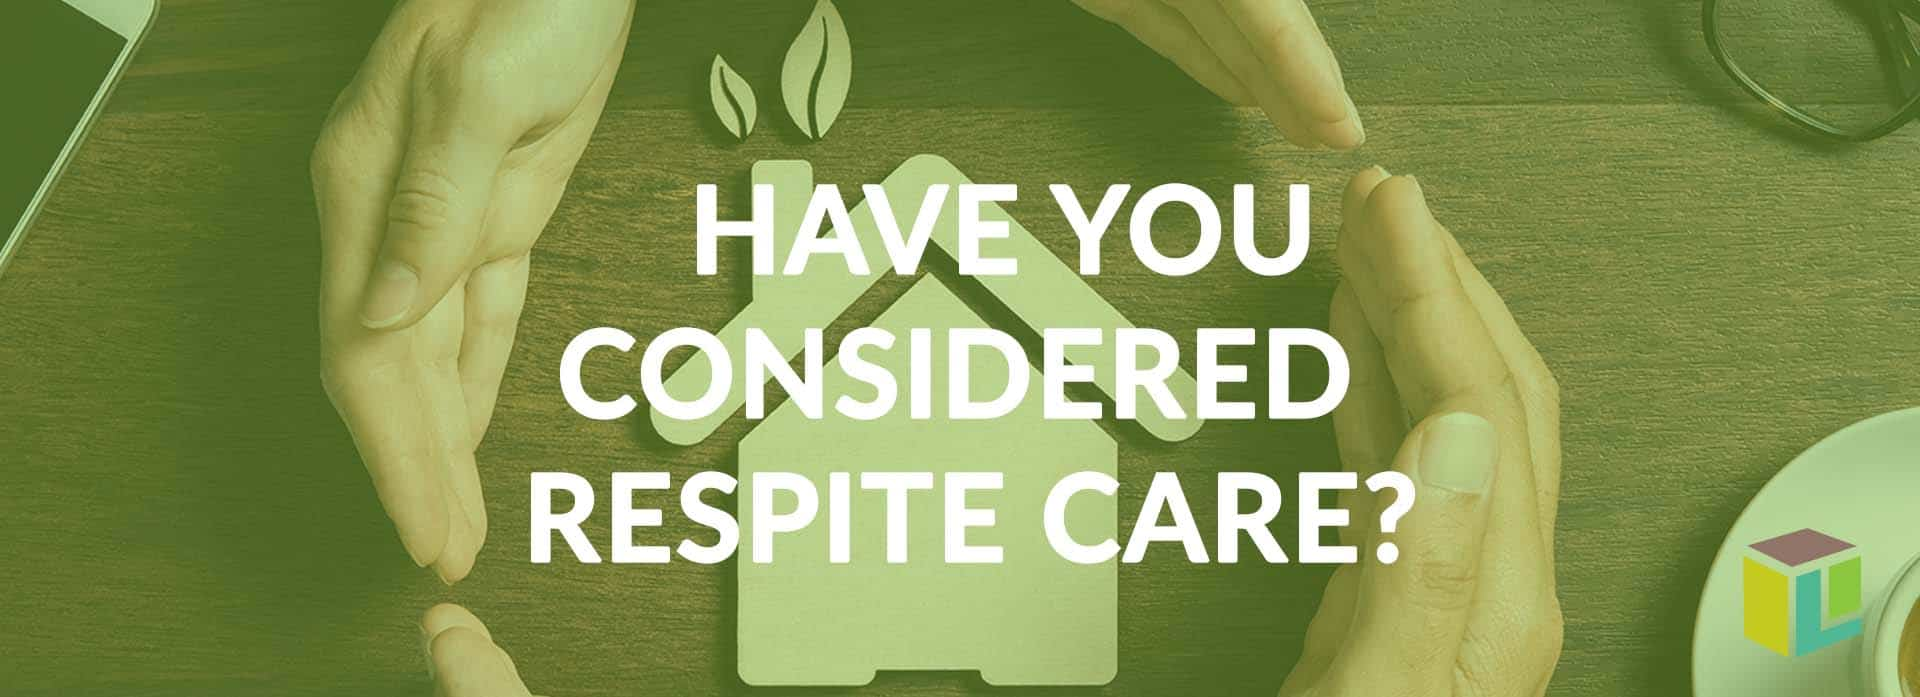 Have You Considered Respite Care?